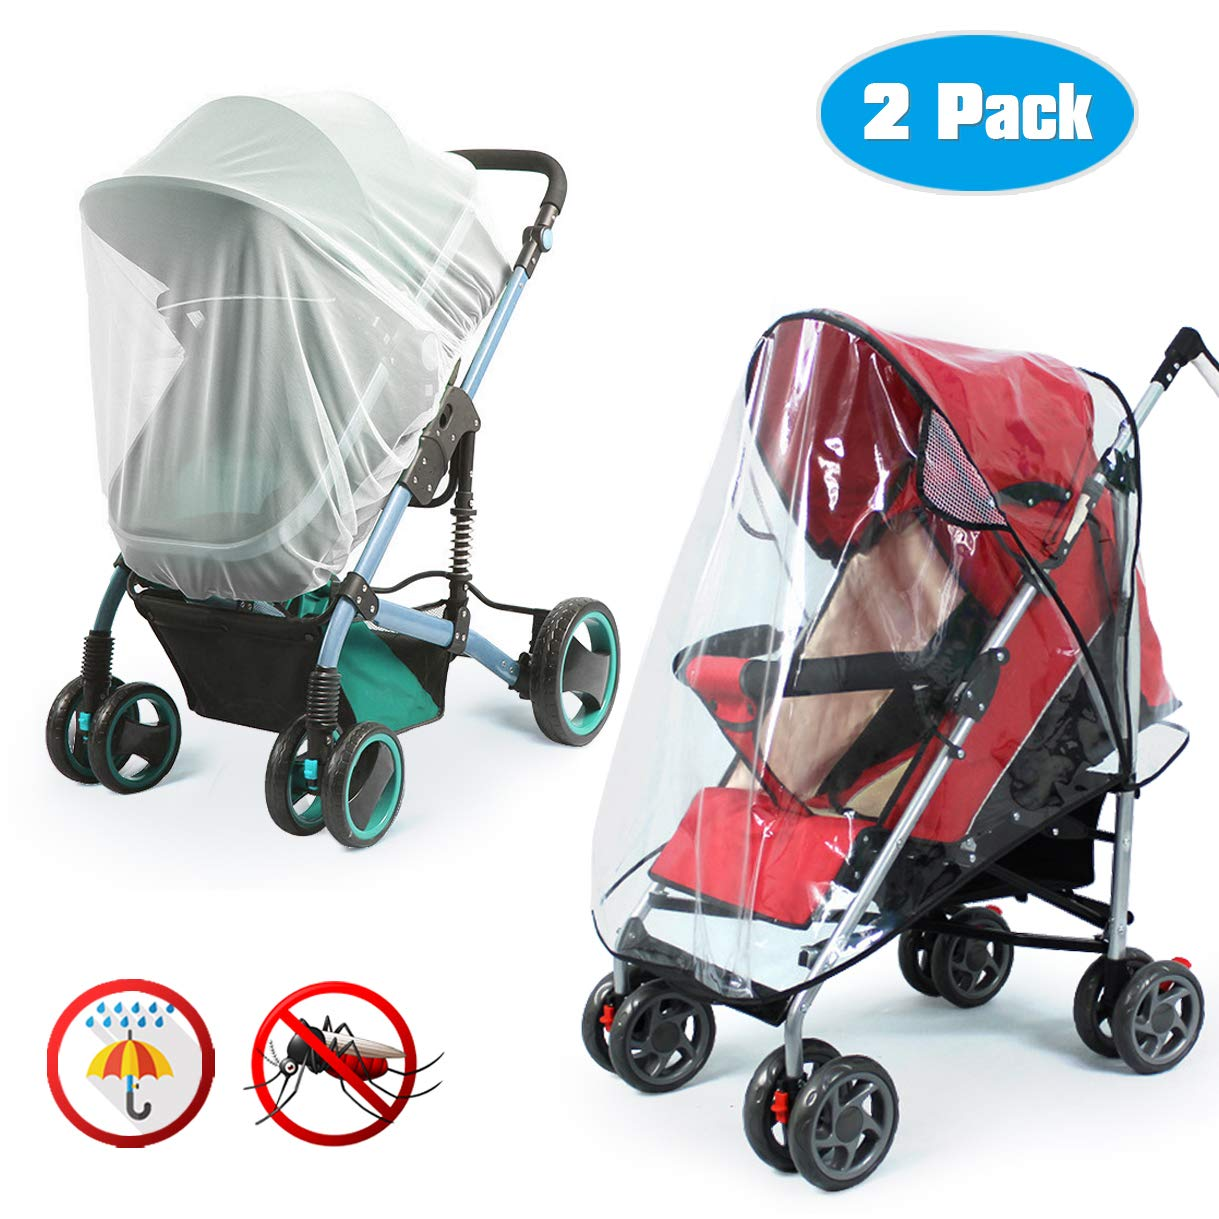 Universal Baby Stroller Rain Cover + Mosquito Net,Idefair Weather Shield Accessories,Protect from Rain Wind Snow Dust Insects Water Proof Ventilate Clear-Breathable Bug Shield for Baby Stroller by Idefair (Image #1)